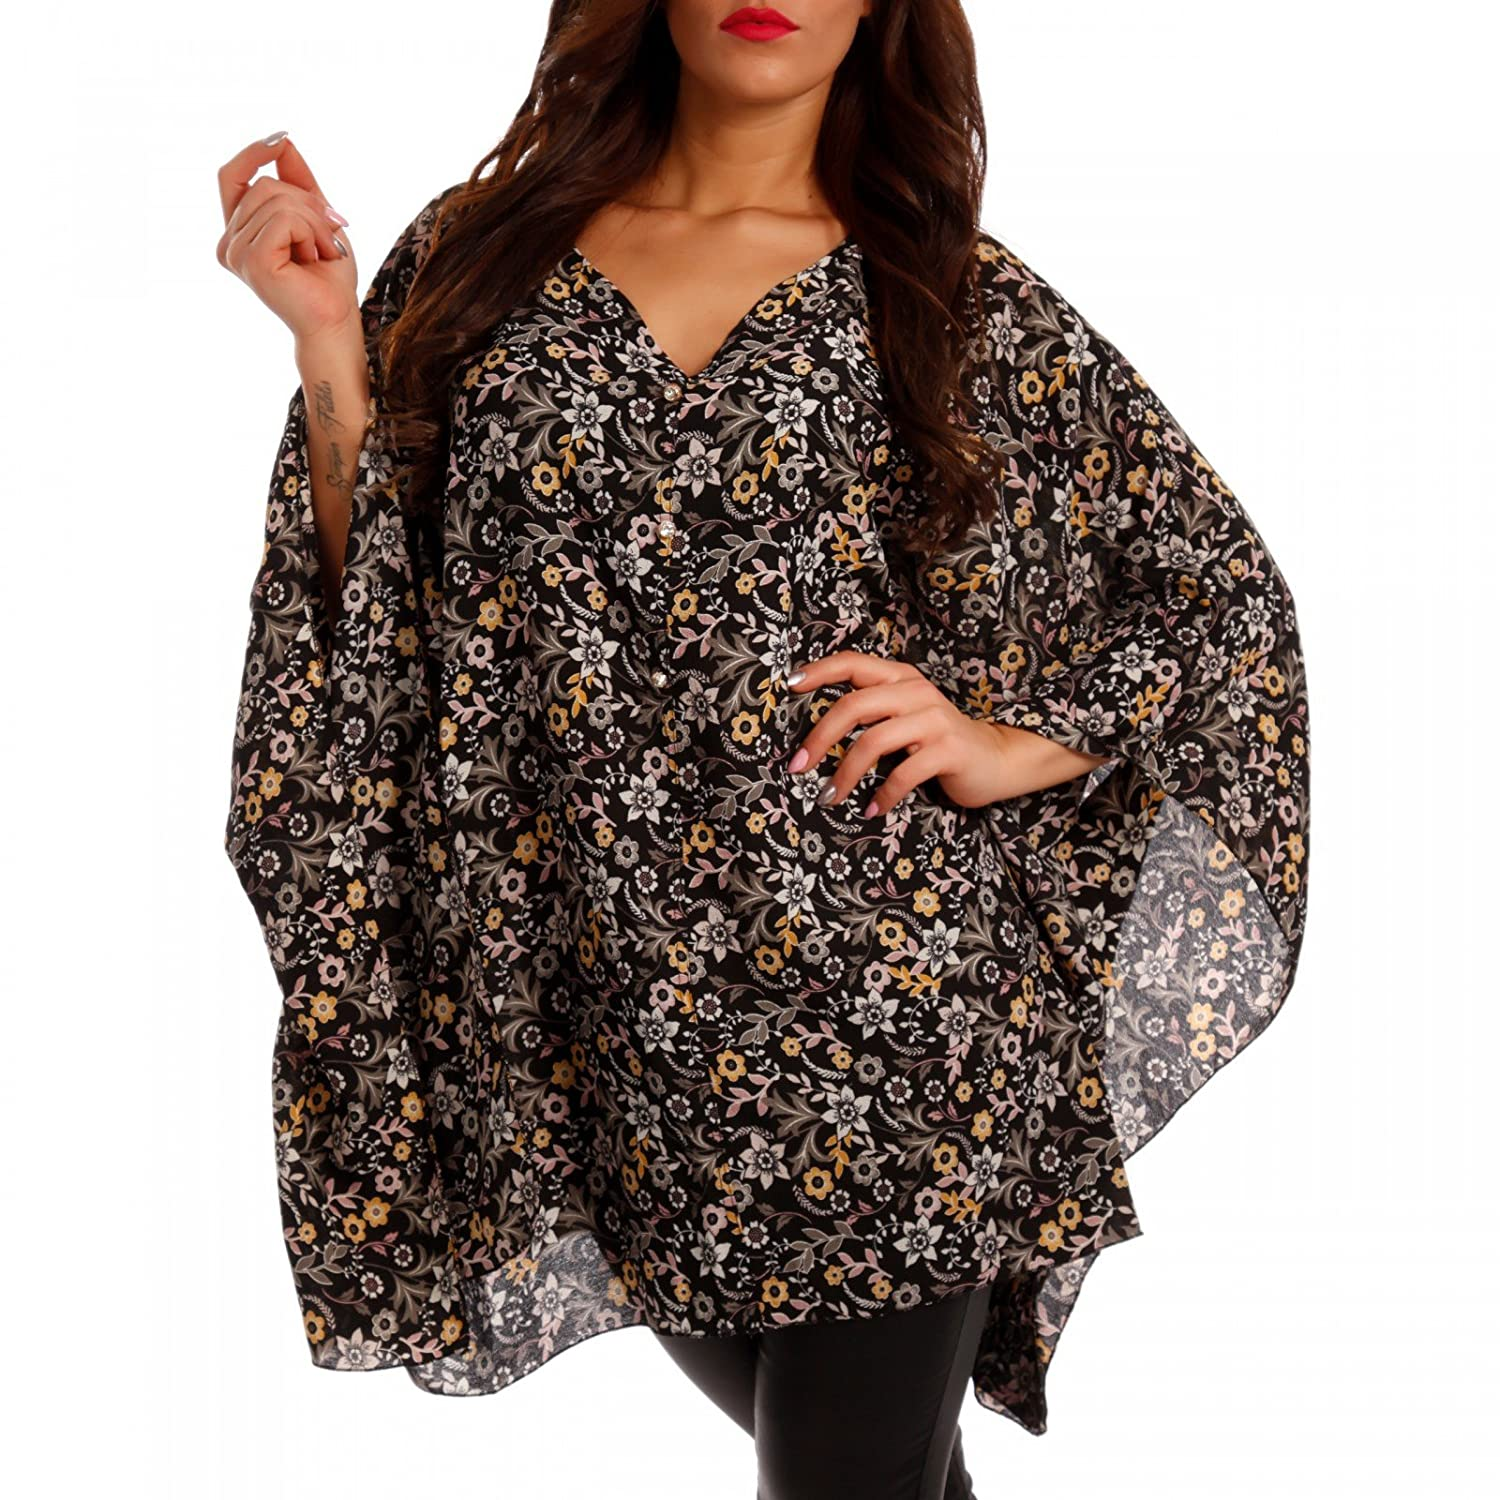 Young-Fashion Damen Oversize Shirt Strandshirt Hippie Tunika Strandkleid  Bluse: Amazon.de: Bekleidung